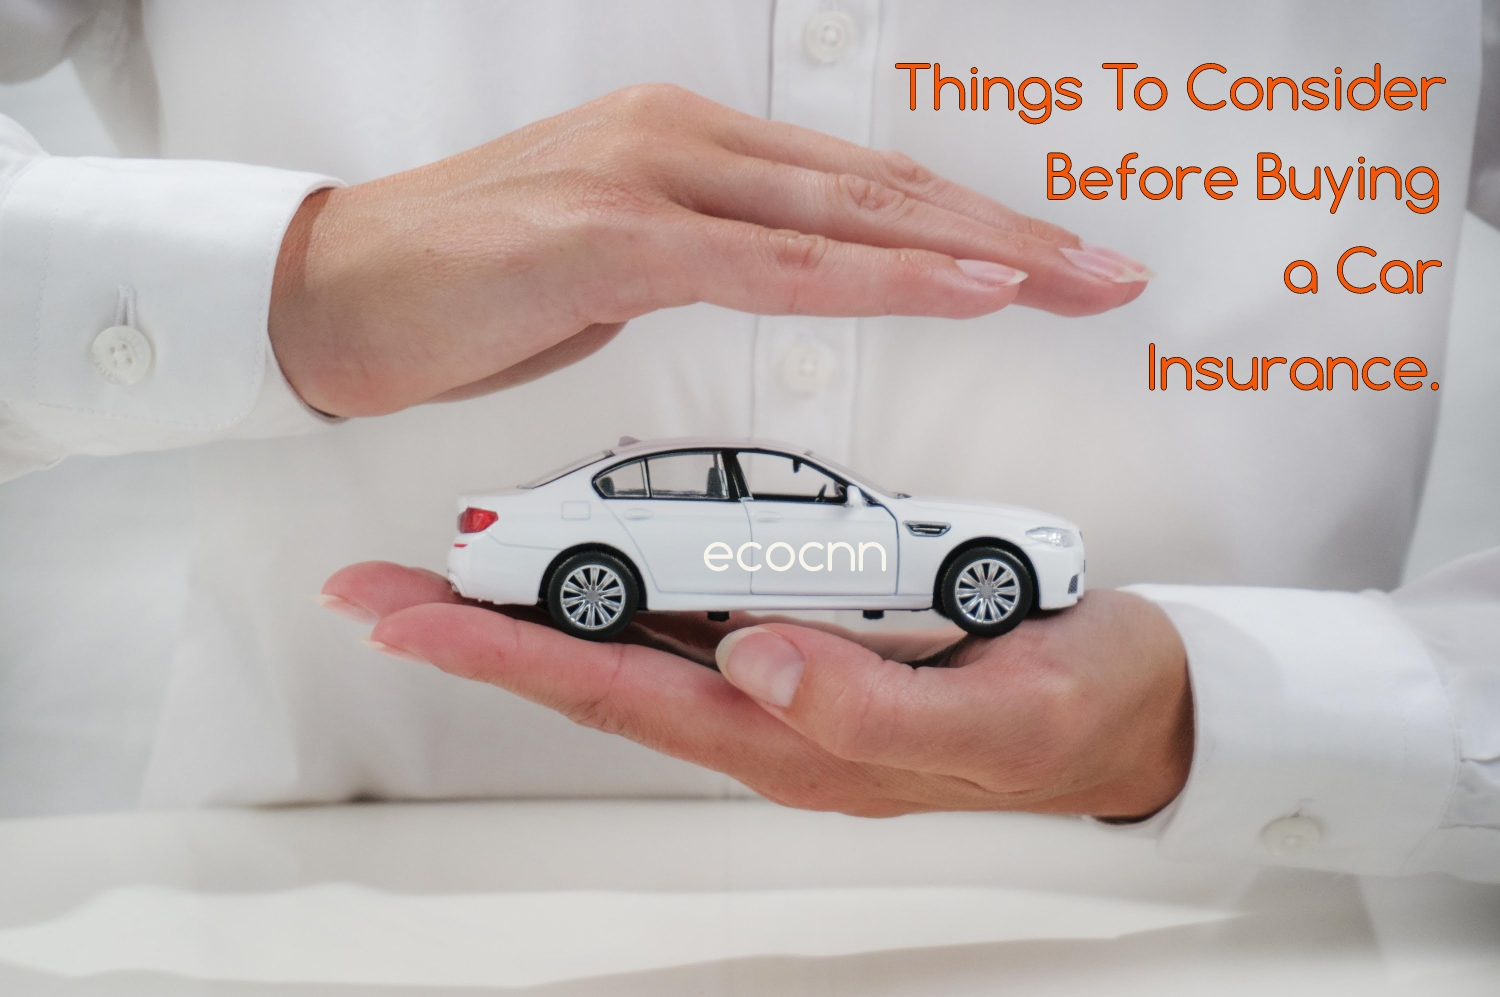 6 Things To Consider Before Buying Car Insurance 2021